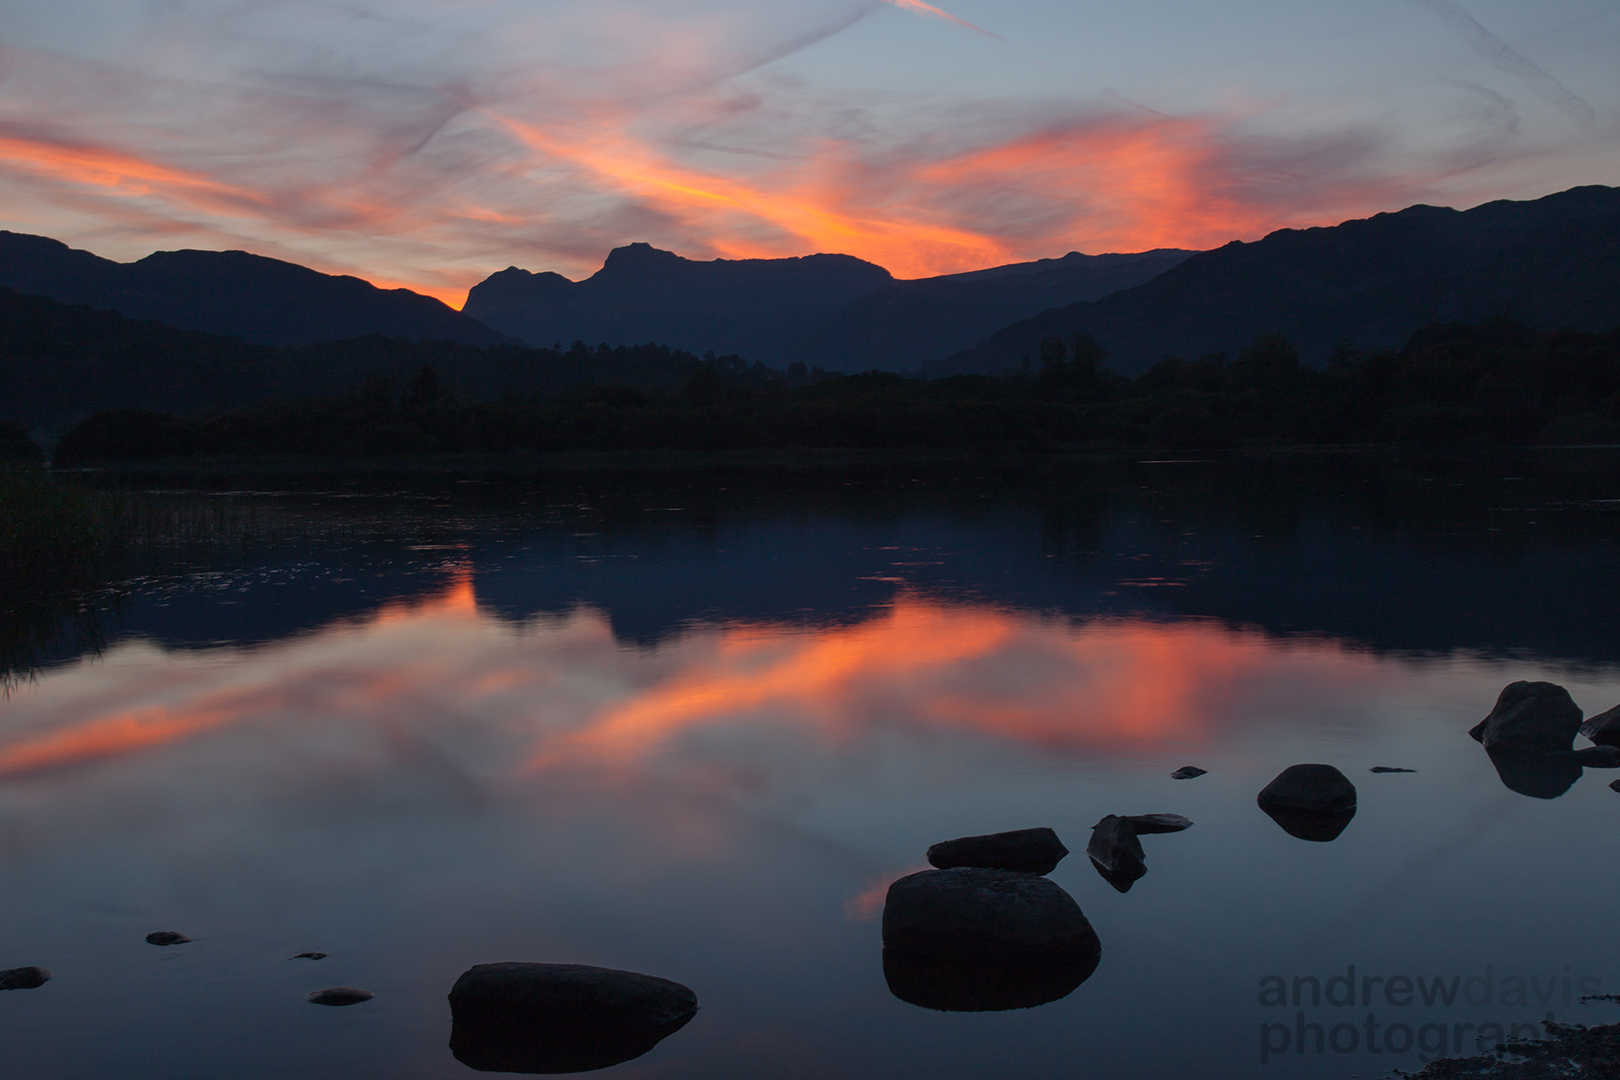 Sunset over the Langdale Pikes reflected in Elterwater, Cumbria